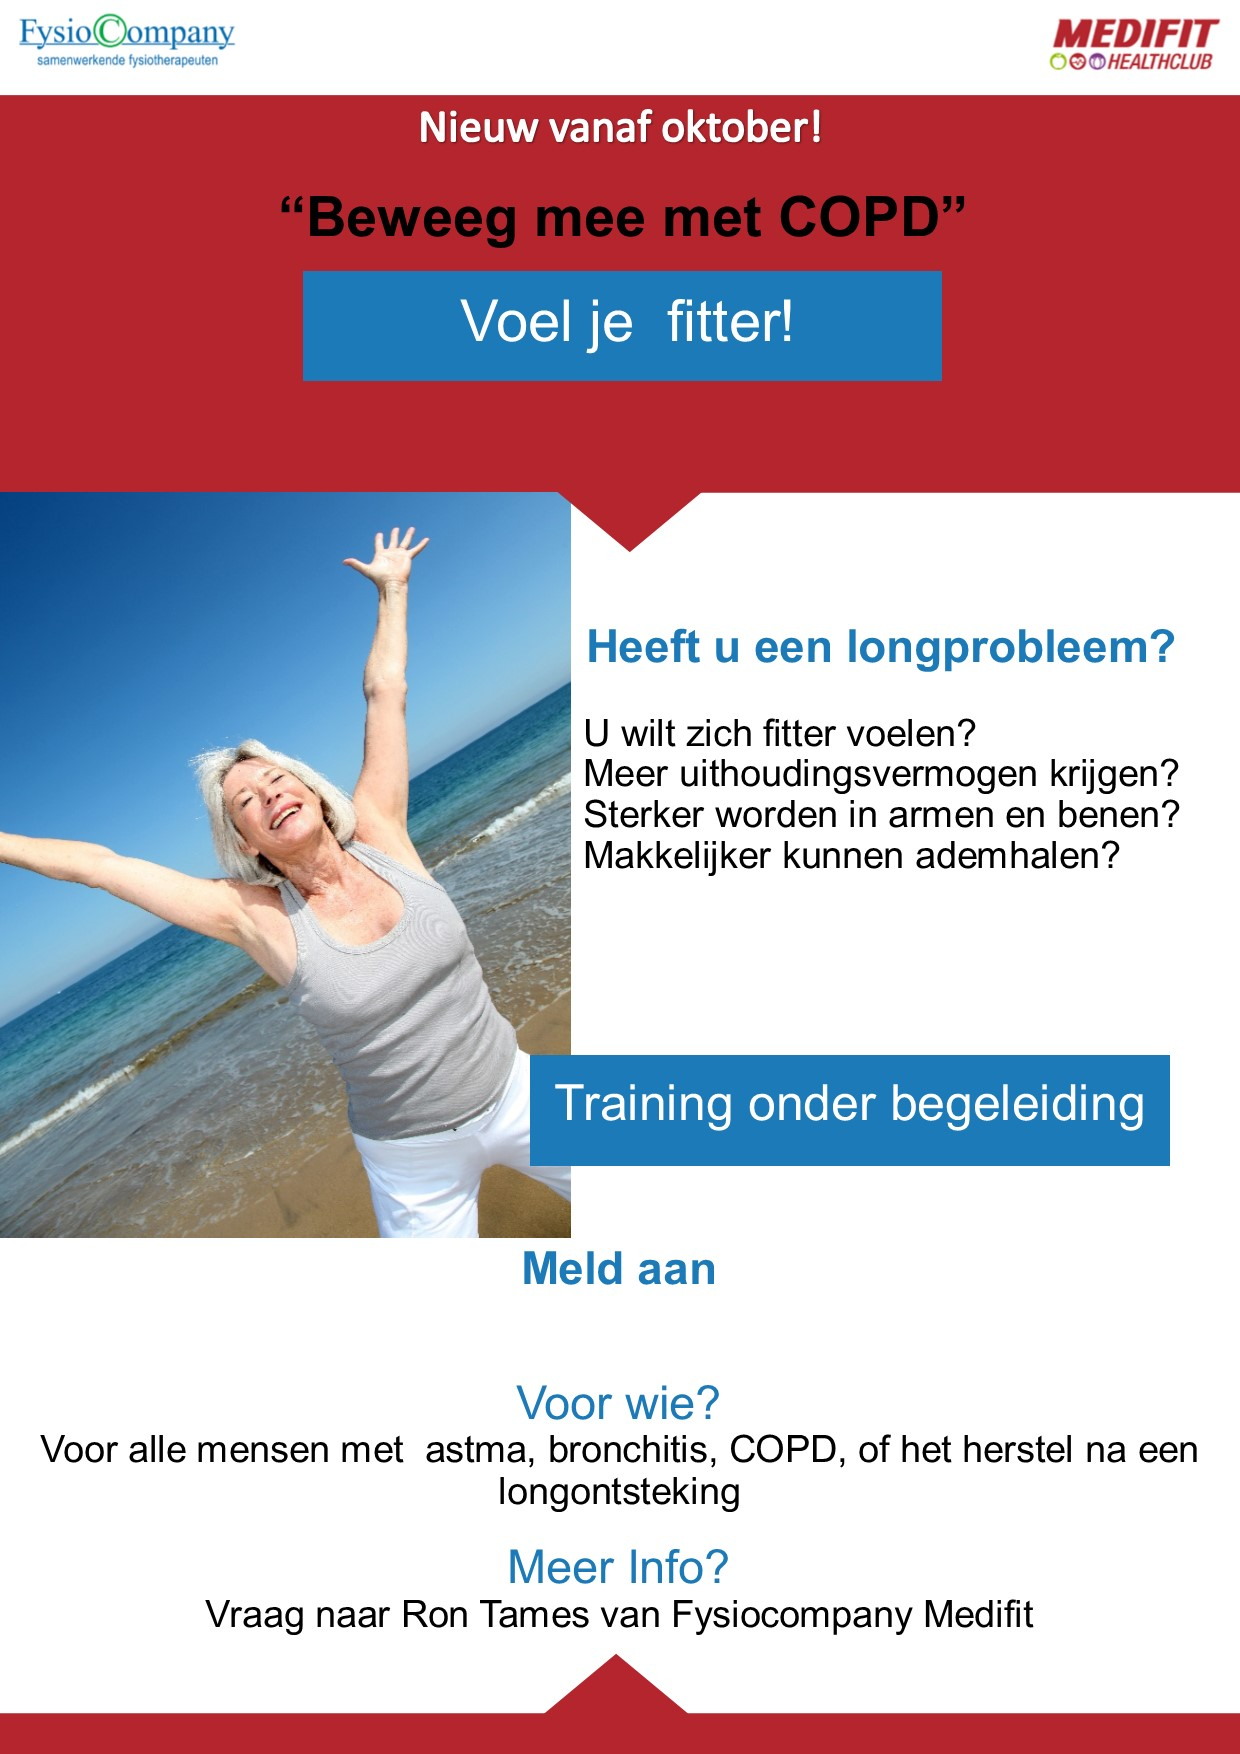 Copdgroep Medifit